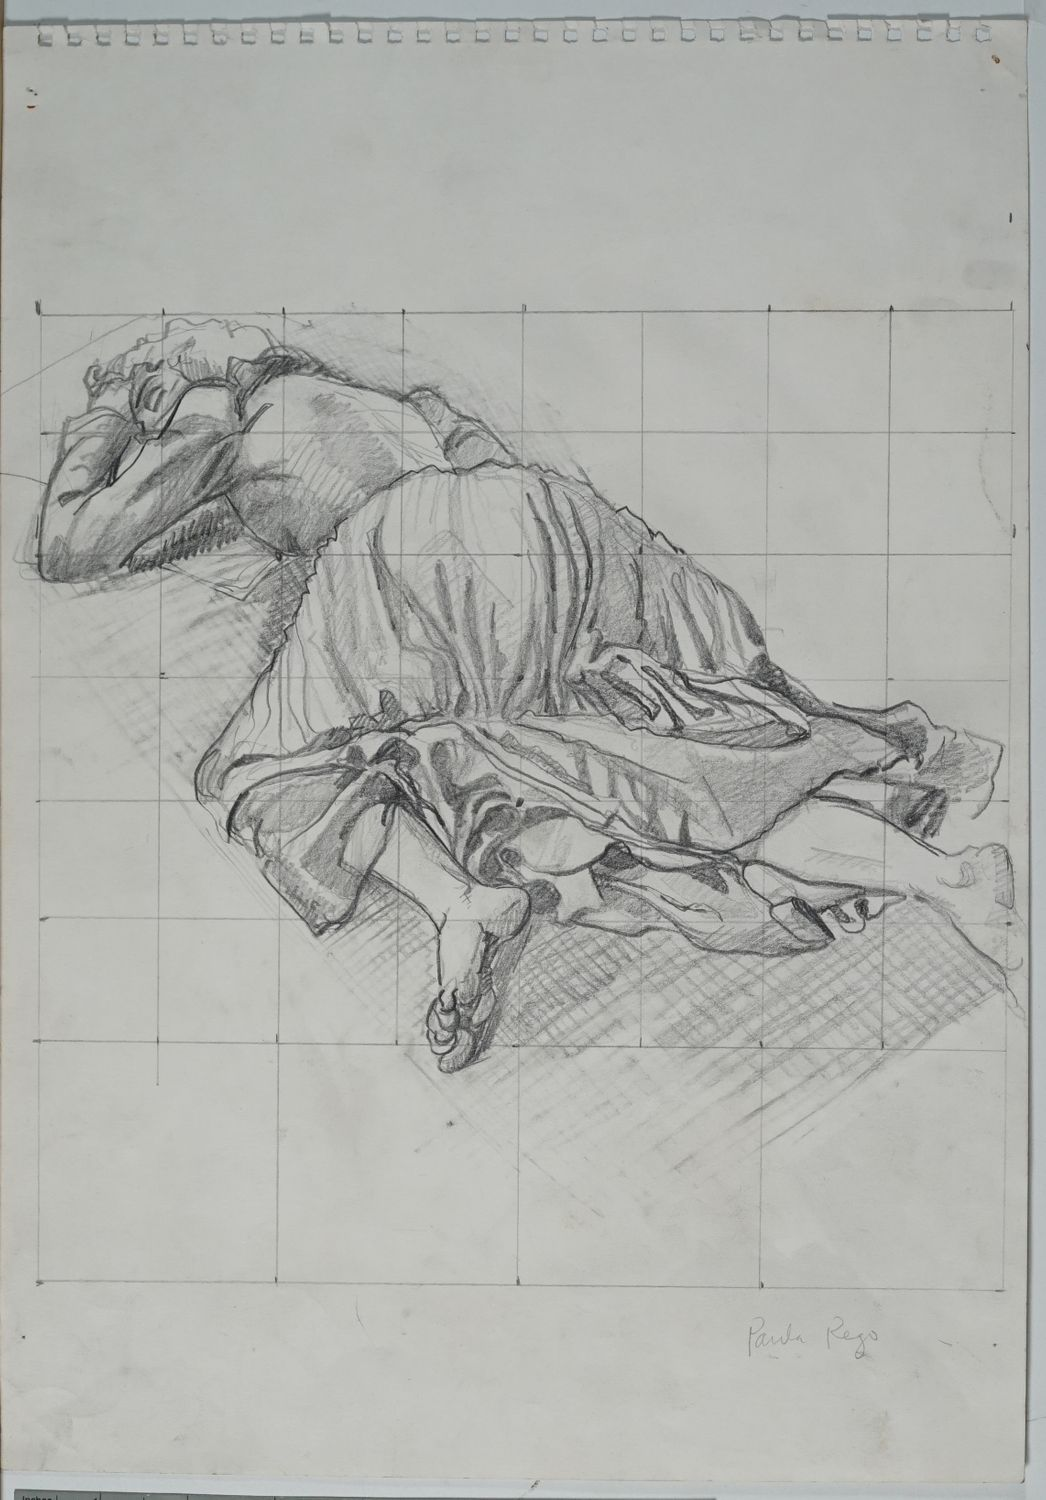 paula rego from mind to hand drawings from 1980 to 2001